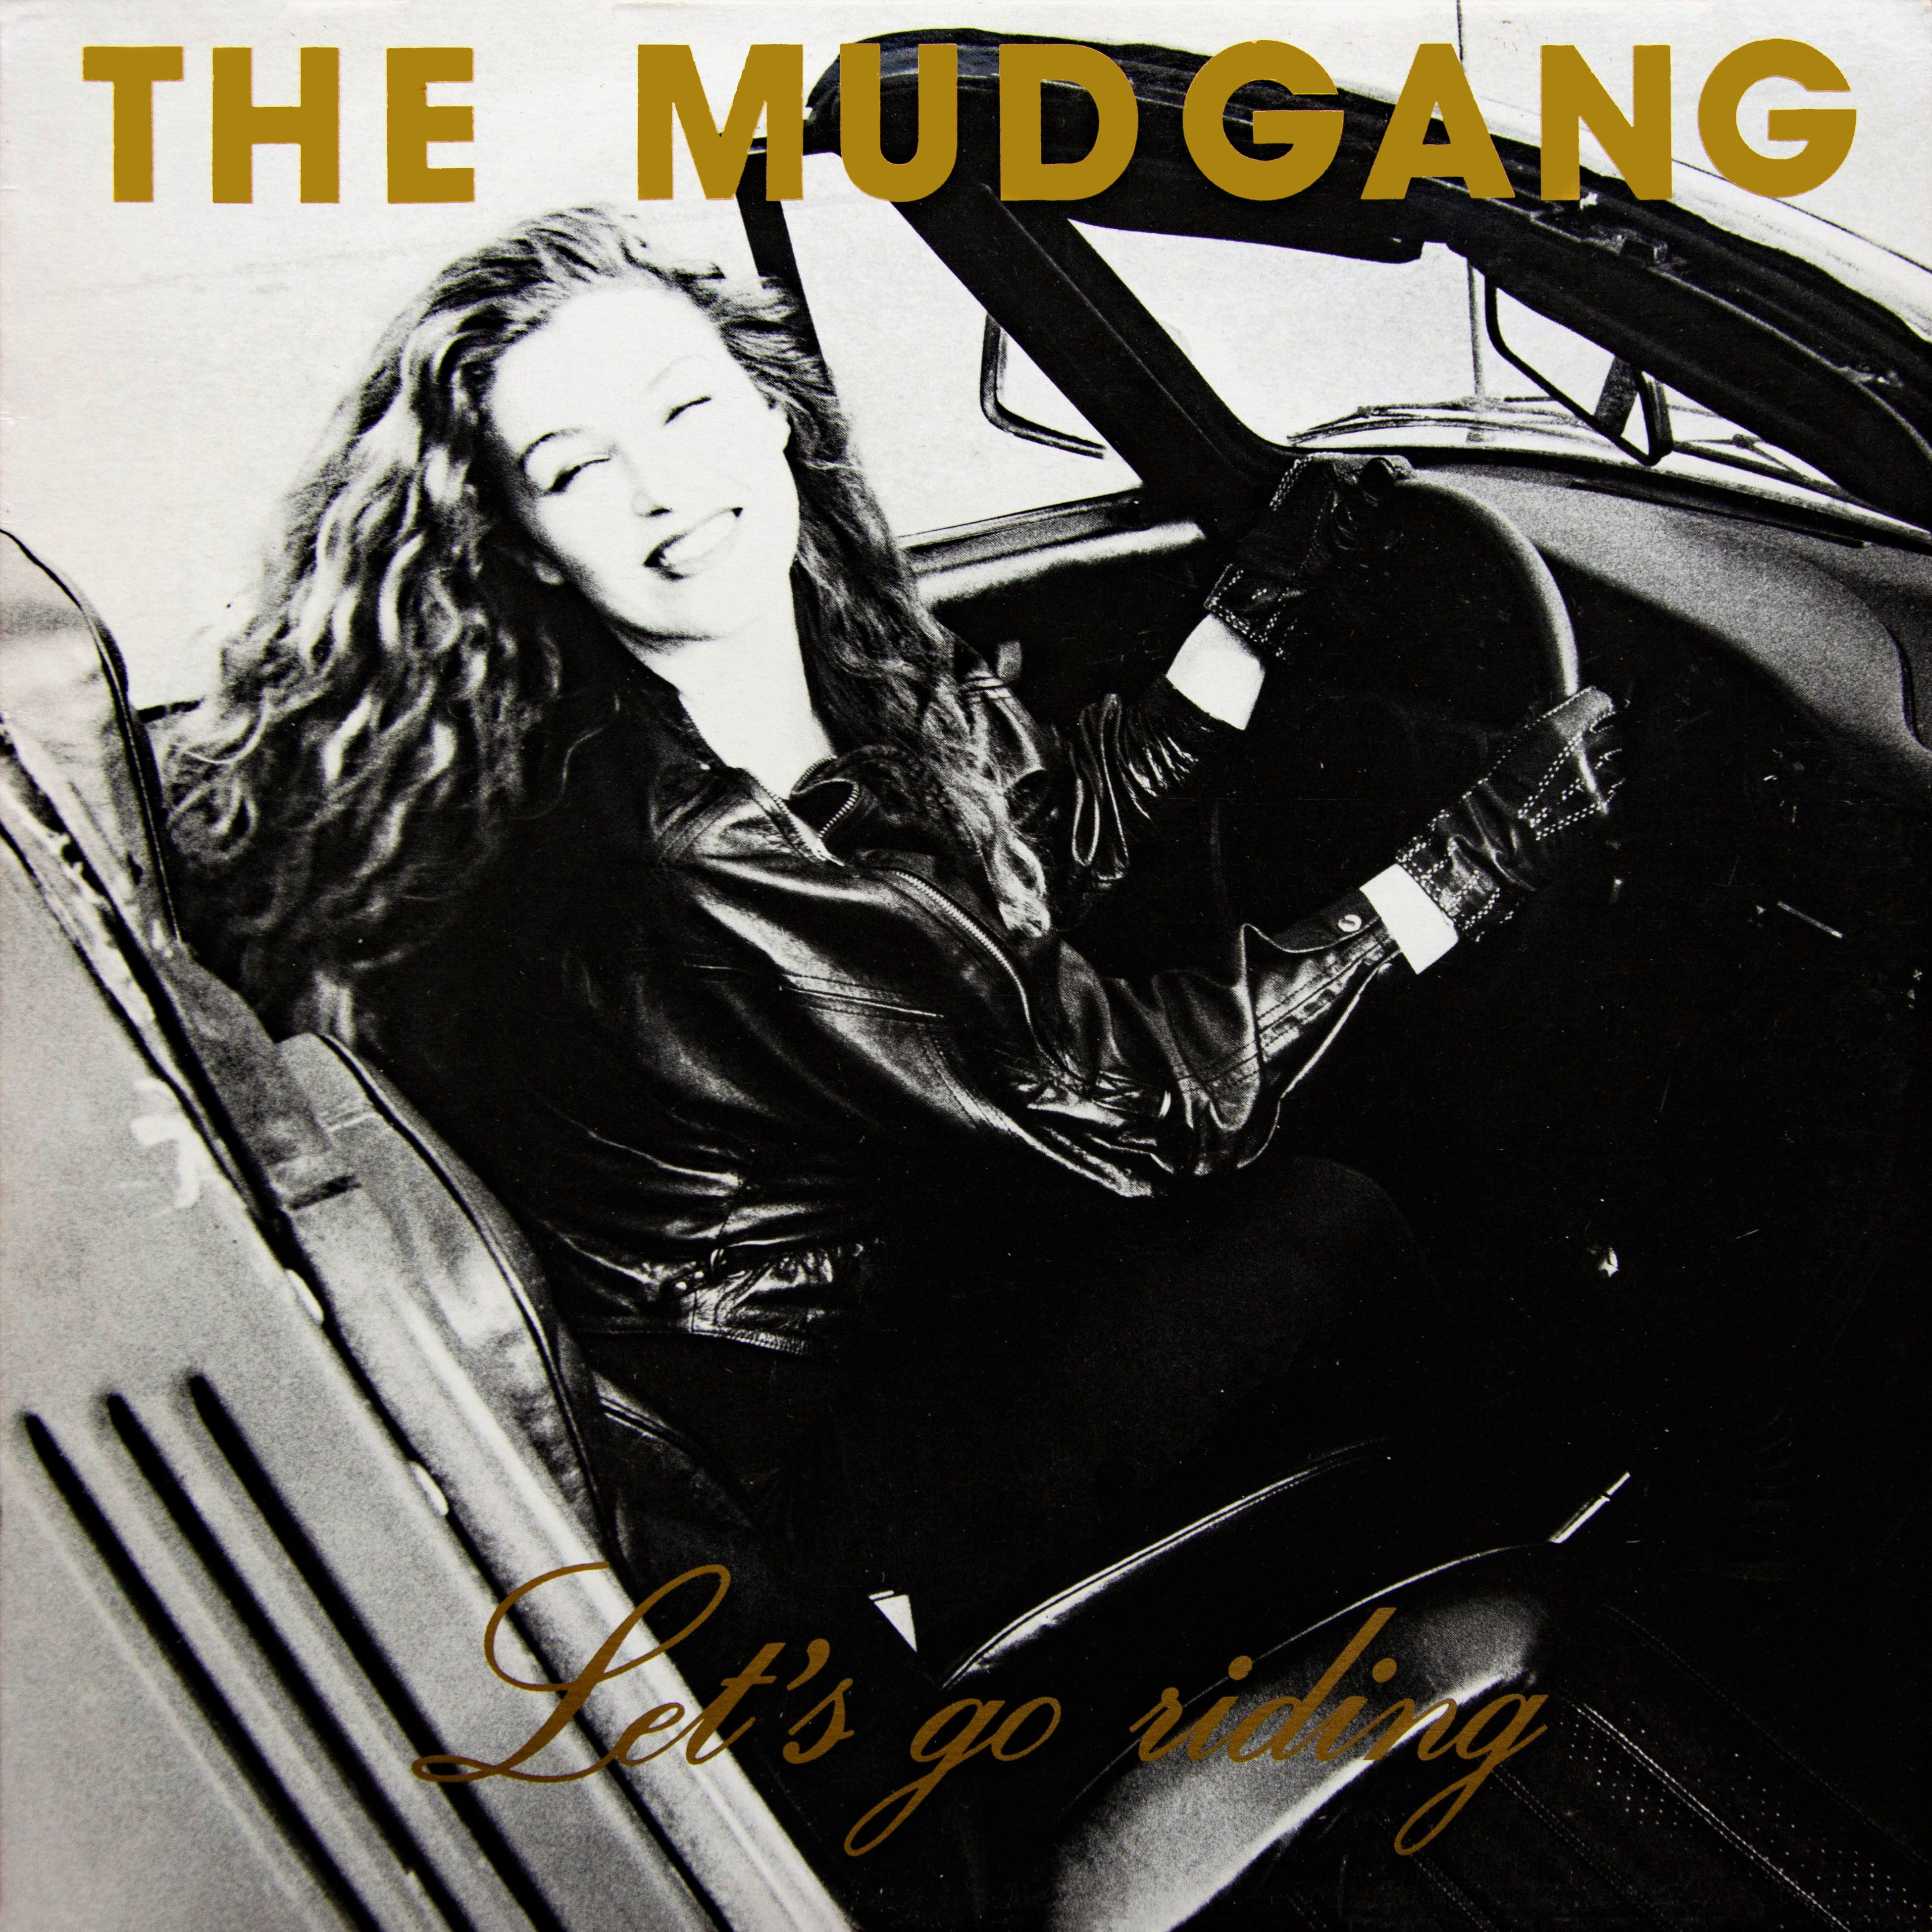 The Mudgang - Let's Go Riding front cover